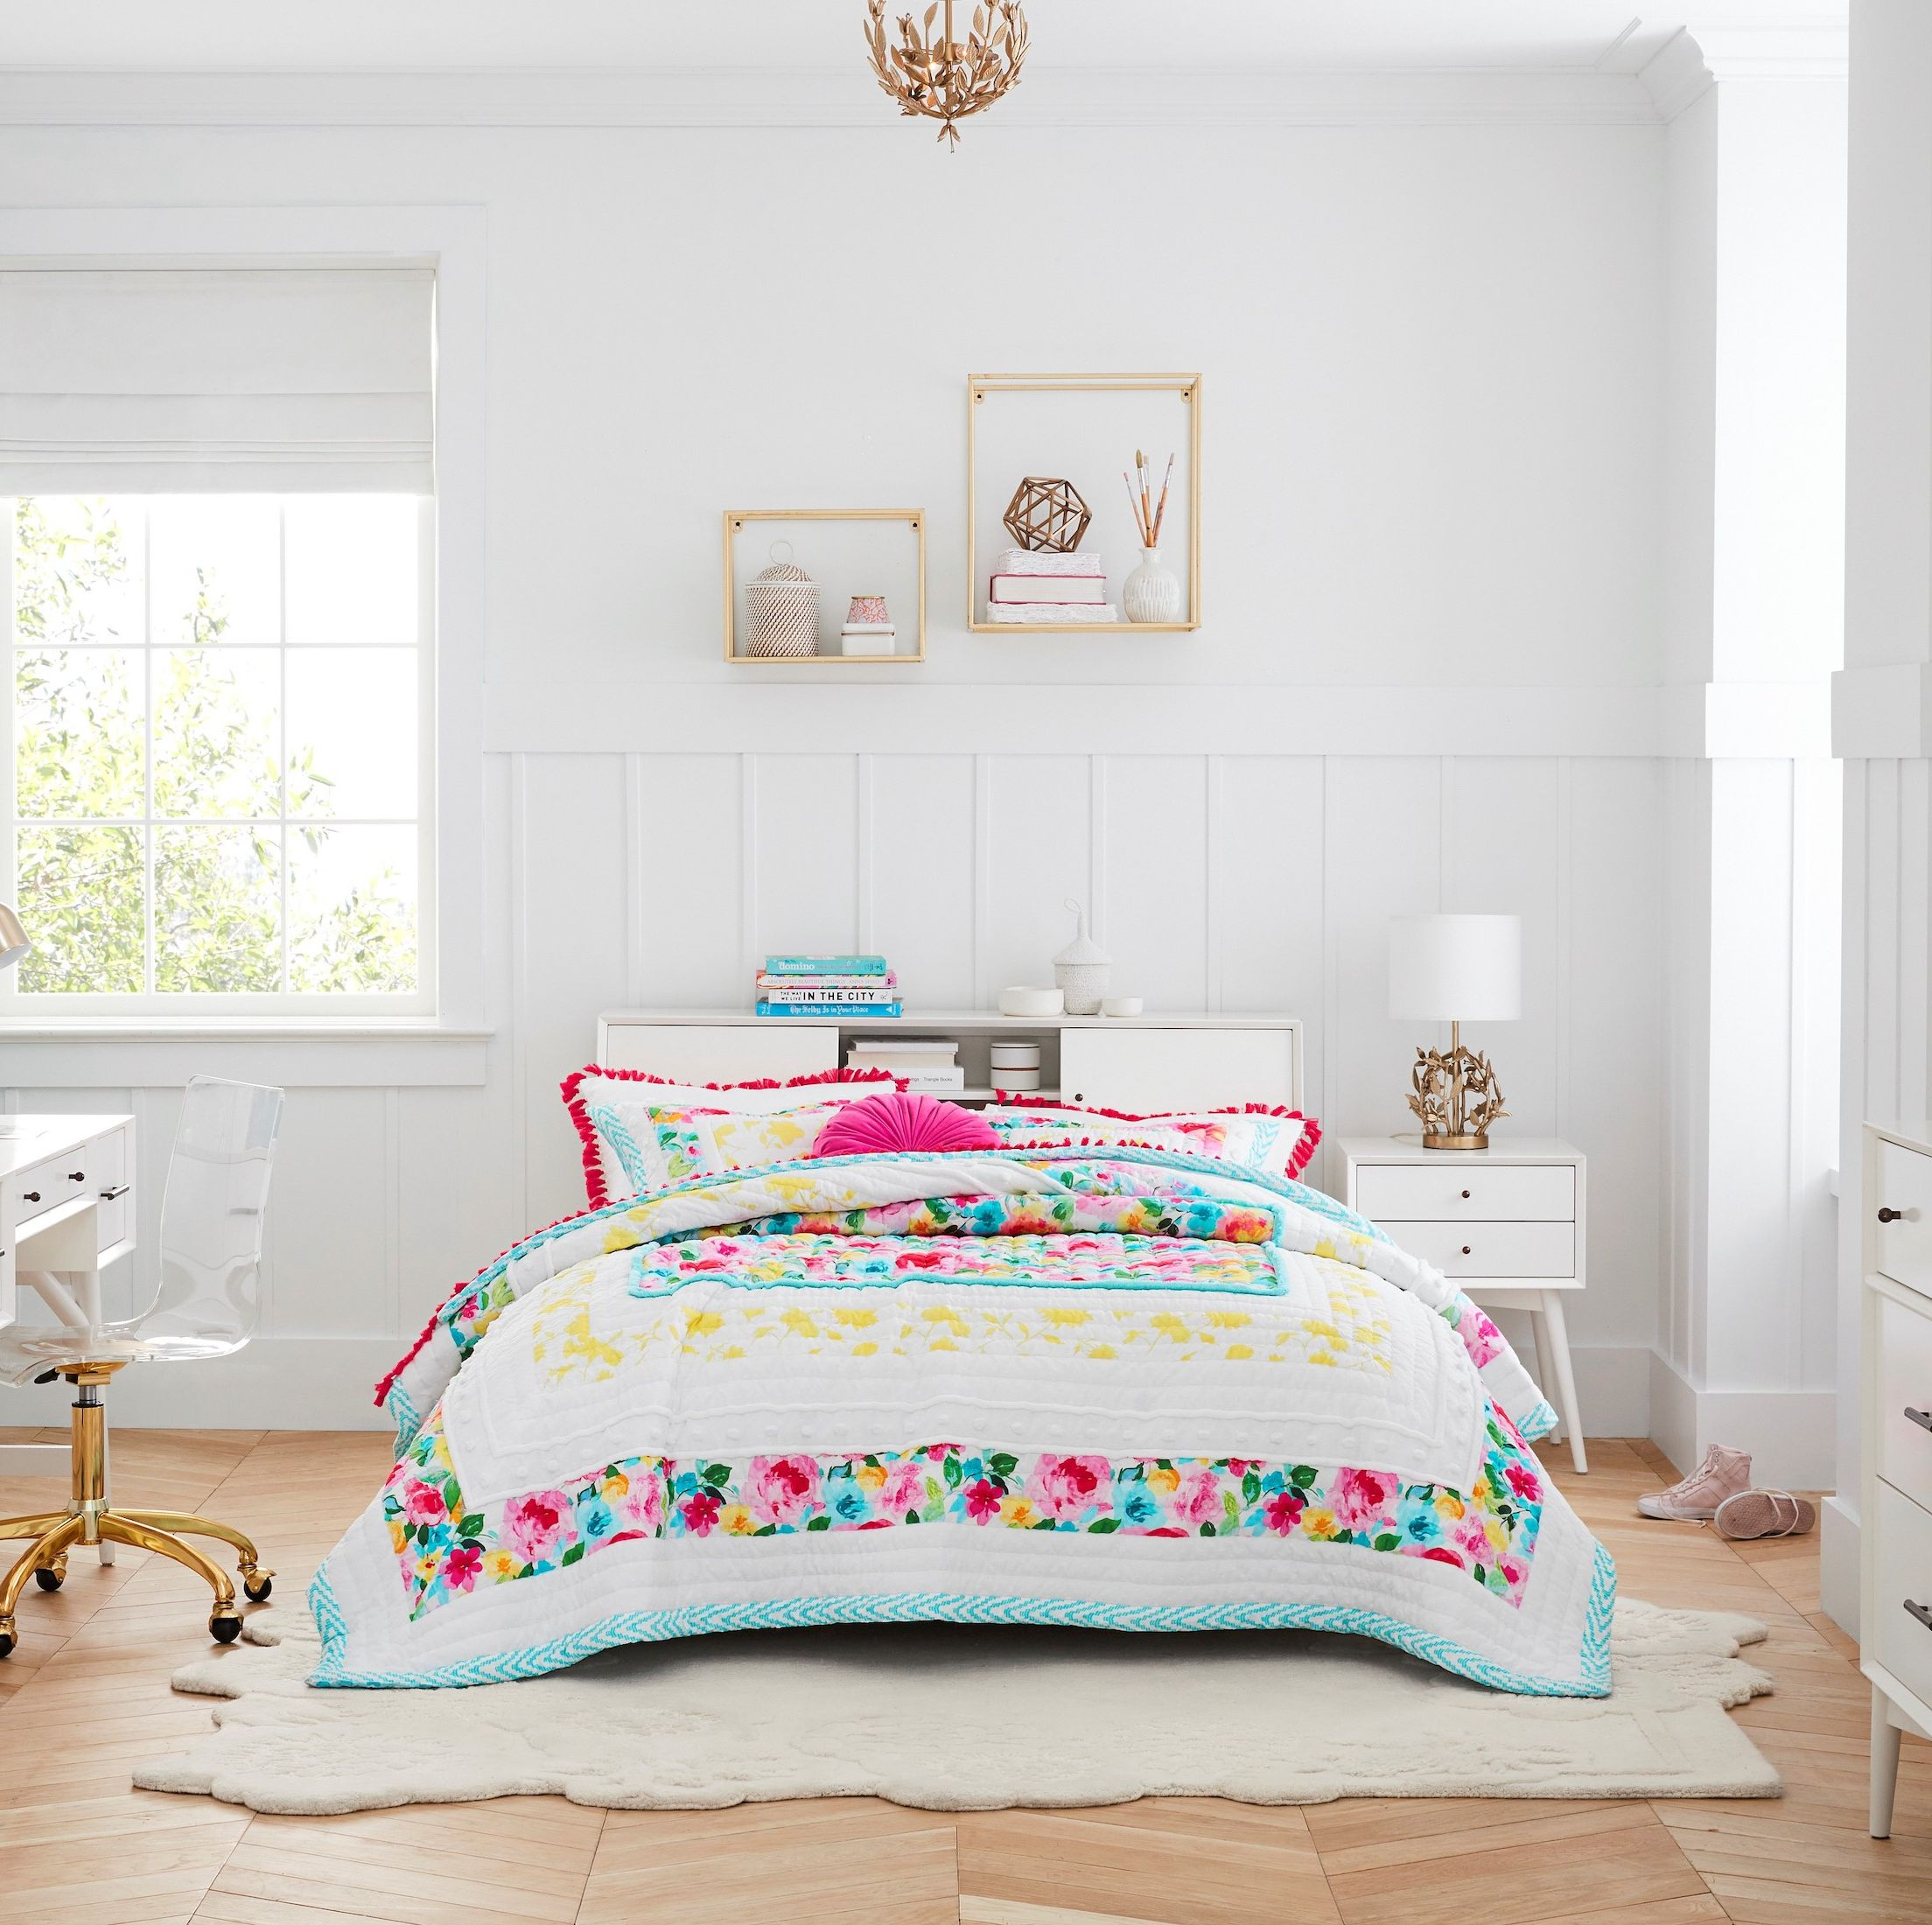 Fashion Designer Tracy Reese and Pottery Barn Are Launching a Line for Kids And Teens